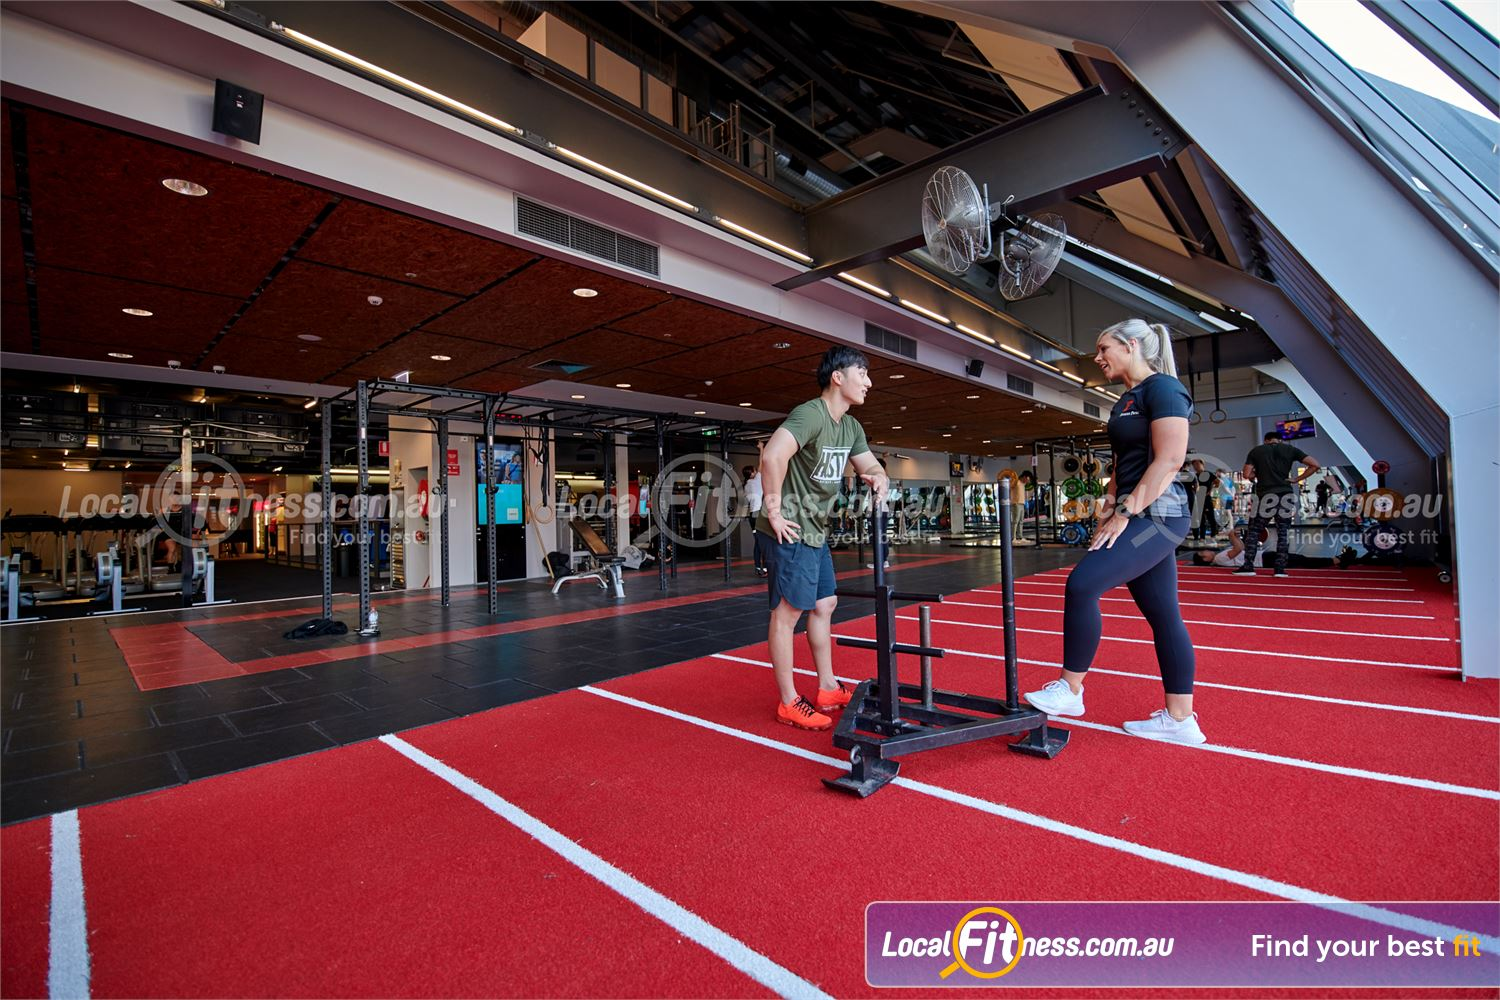 Fitness First QV Platinum Near East Melbourne Indoor speed/agility sled track at Fitness First Melbourne gym.